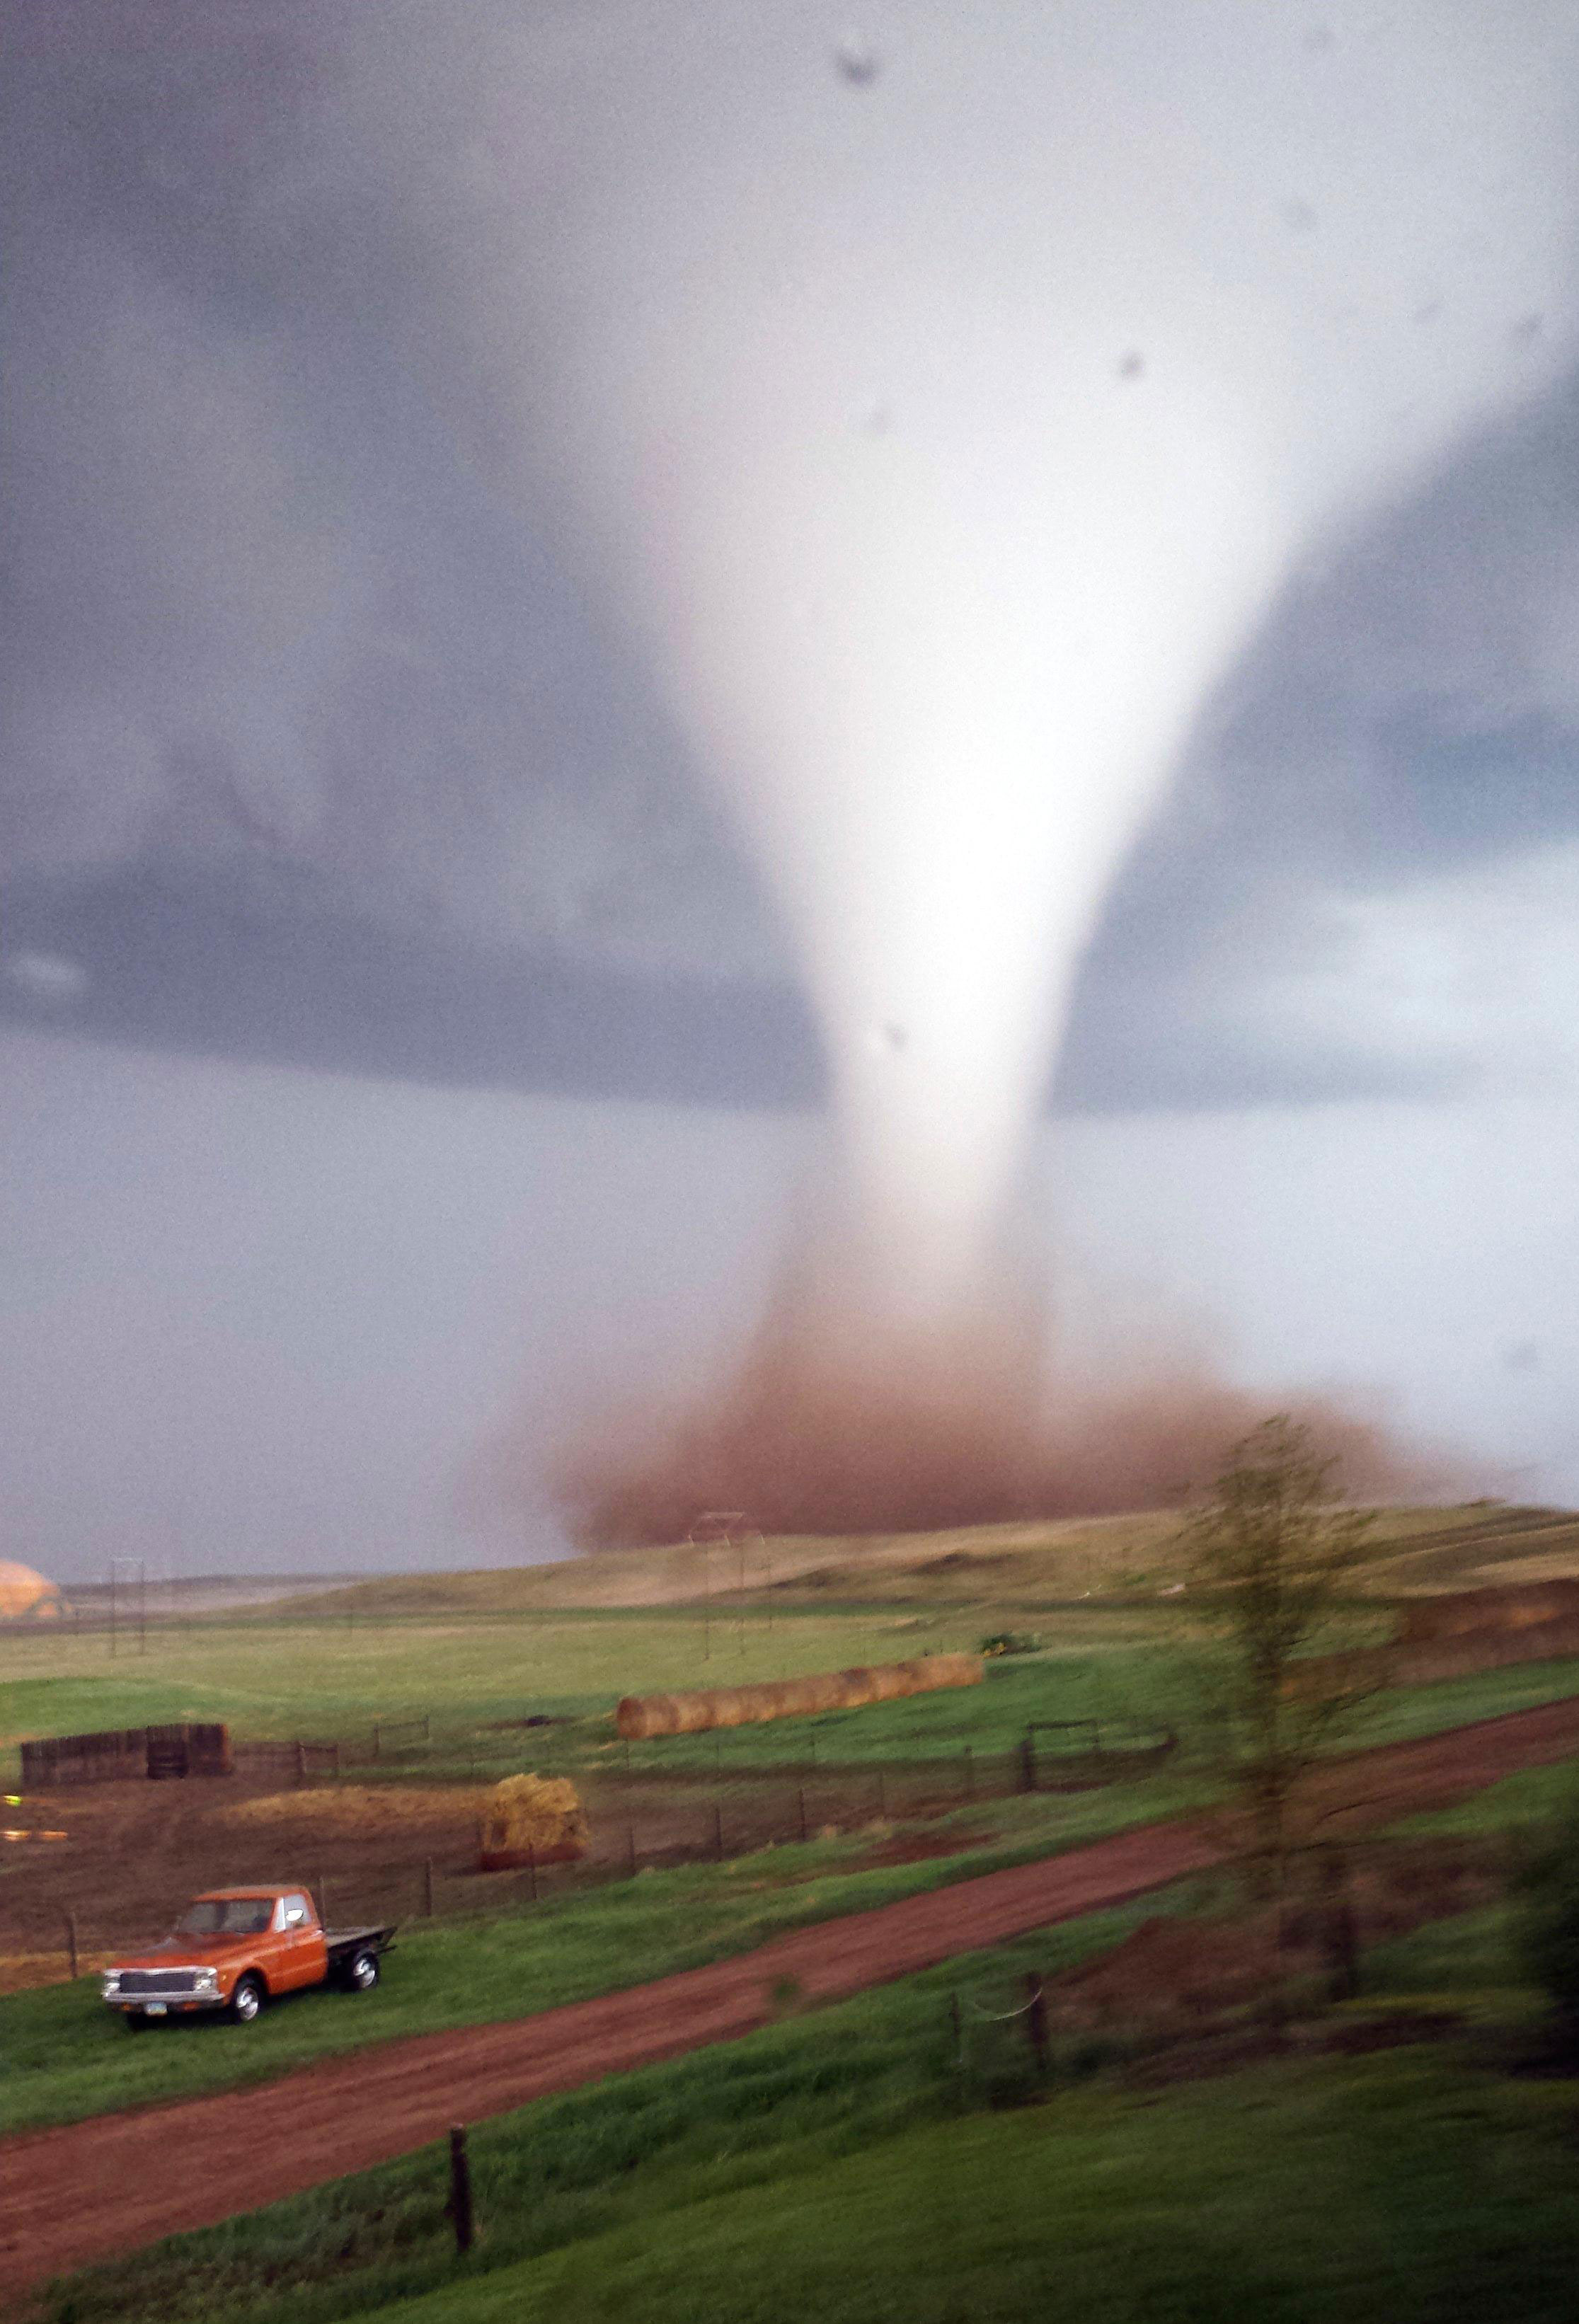 10 Facts About Tornadoes That Everybody Should Know